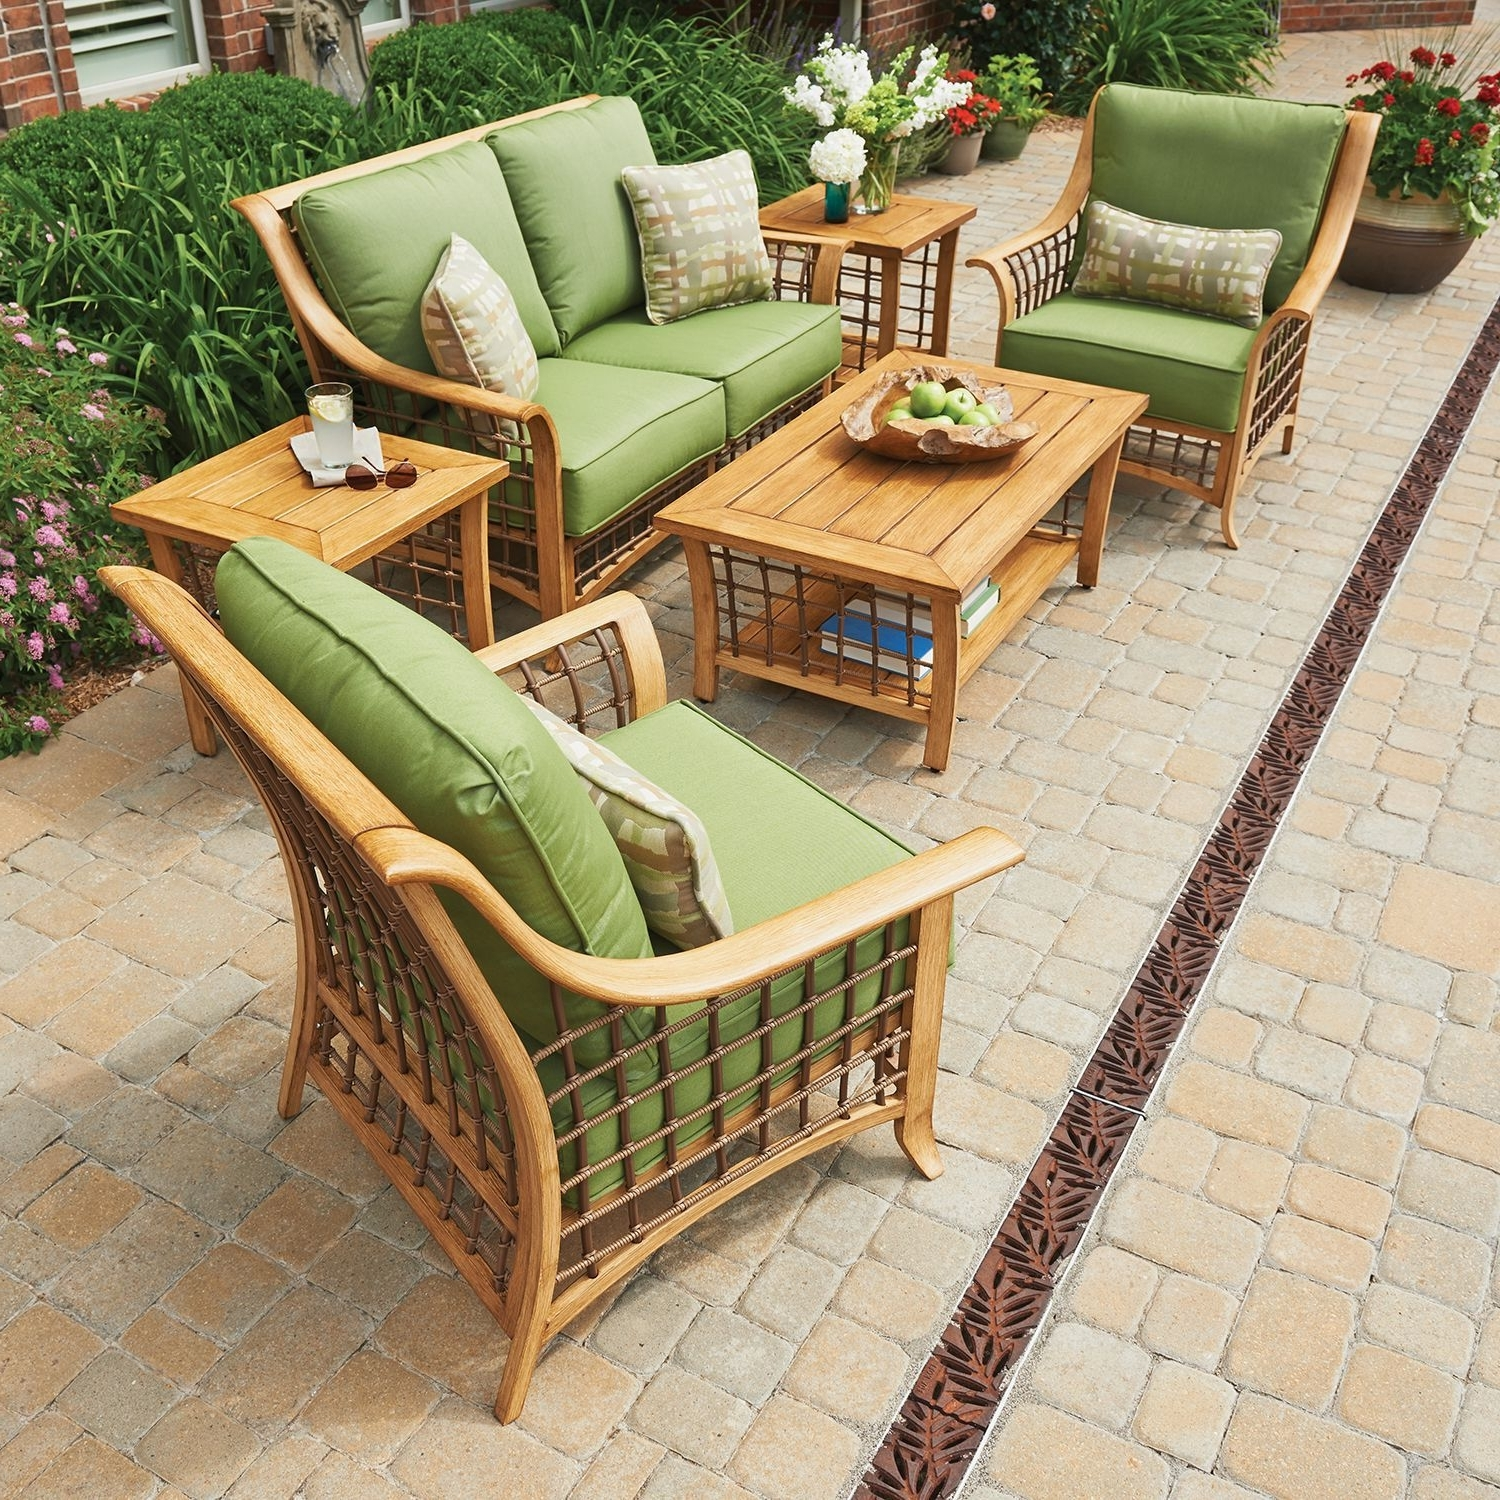 3 Season Porch throughout Patio Conversation Sets At Sam's Club